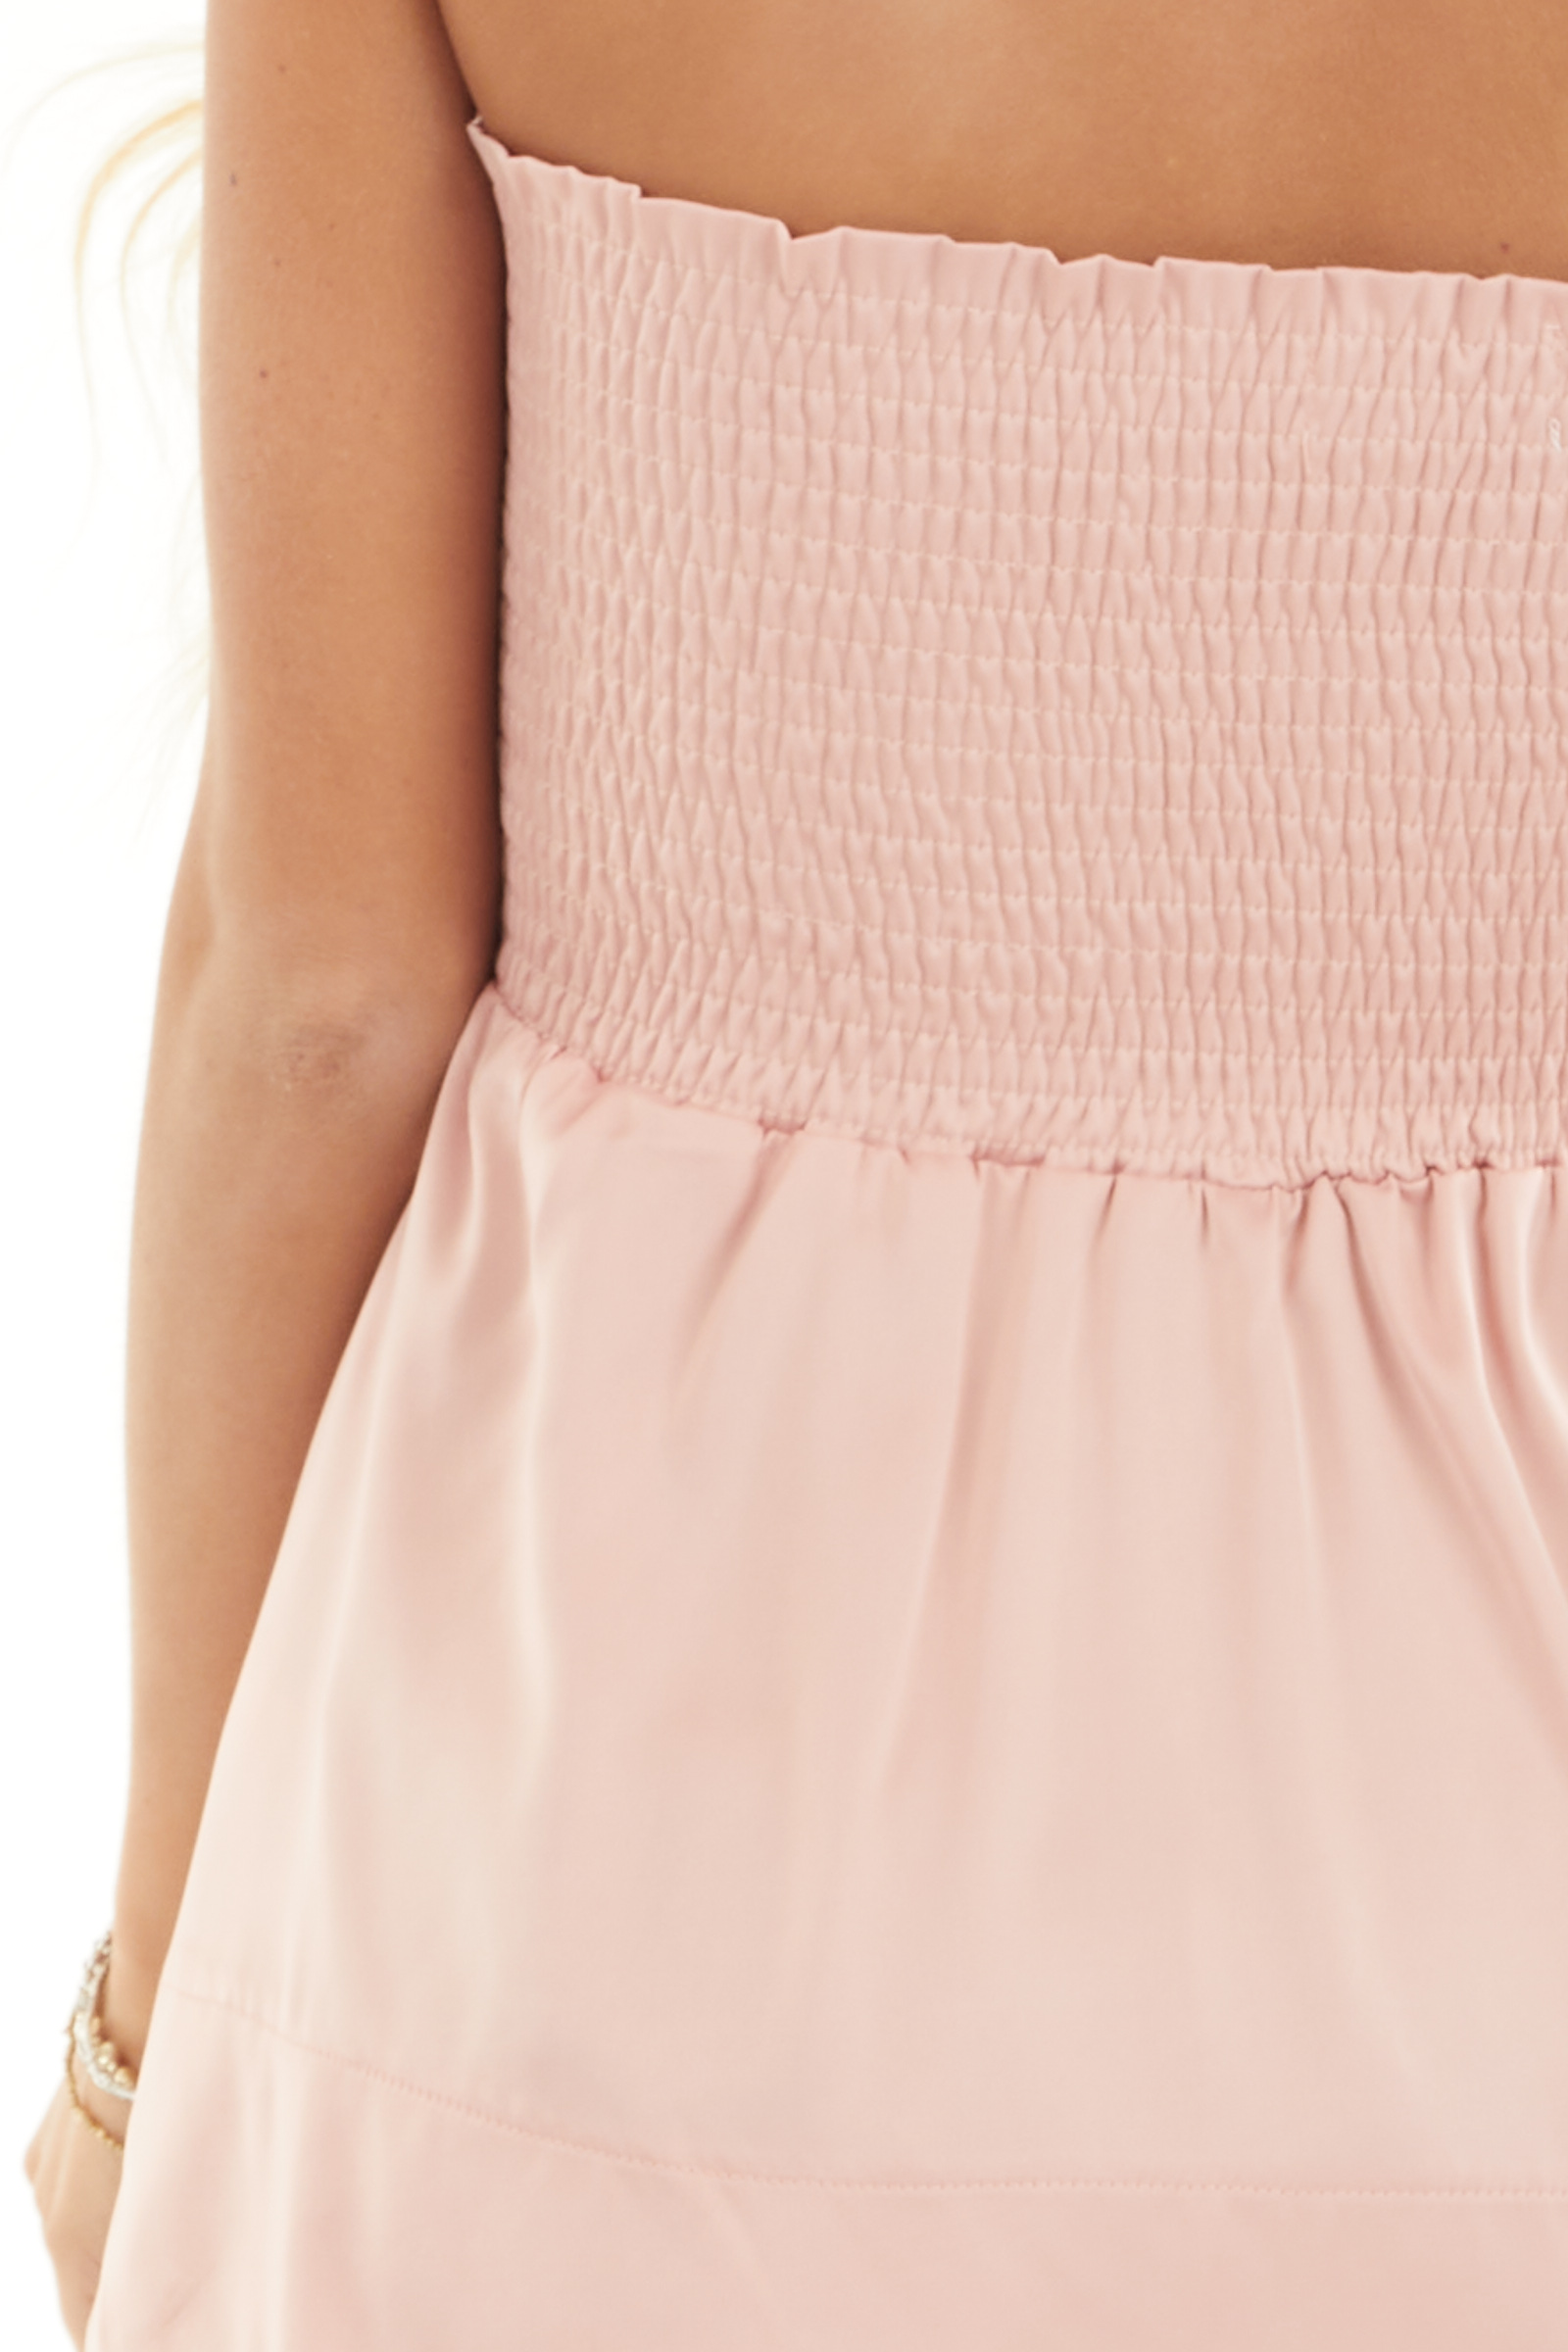 Dusty Blush Smocked Convertible Top or Skirt detail